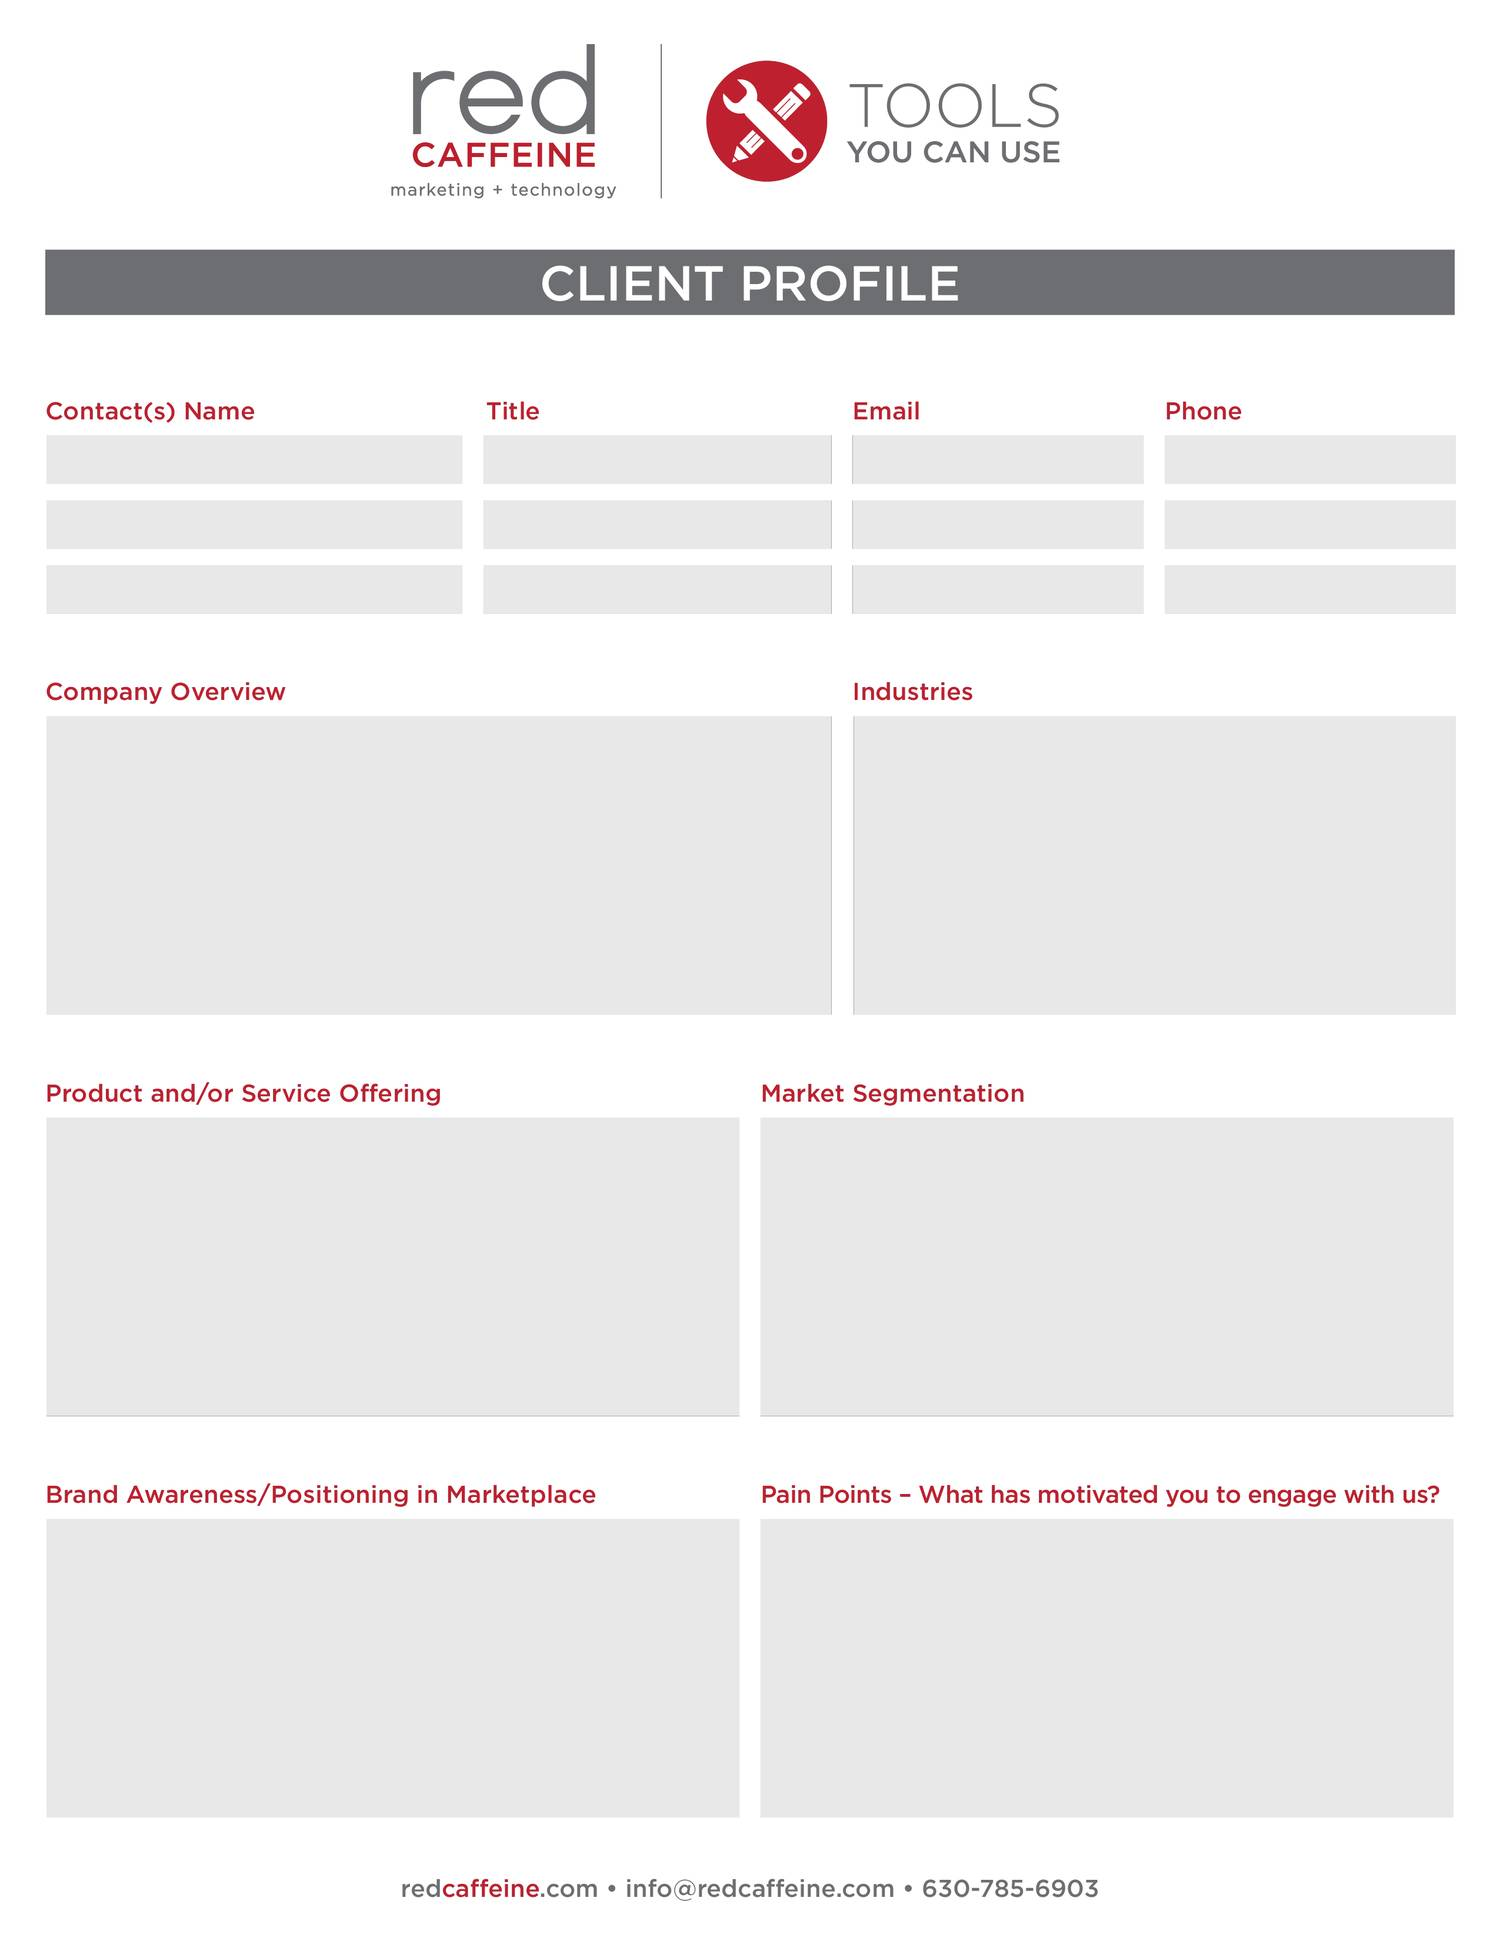 Client Profile Template | Red Caffeine Client Profile Template Pdf Docdroid